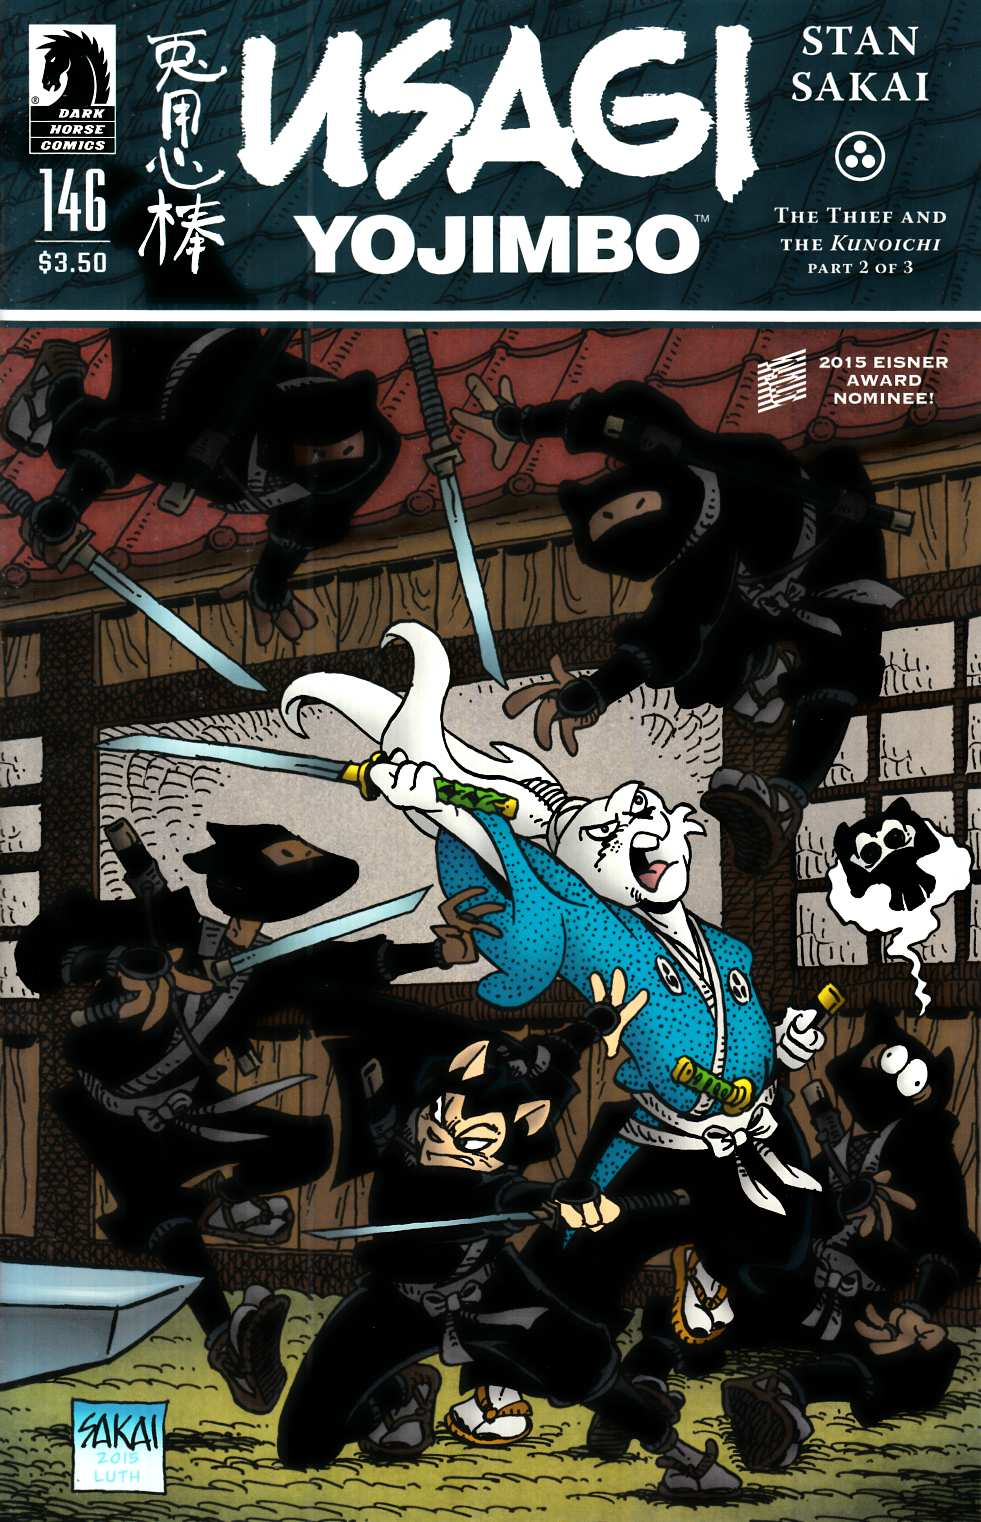 Usagi Yojimbo #146 [Dark Horse Comic] THUMBNAIL